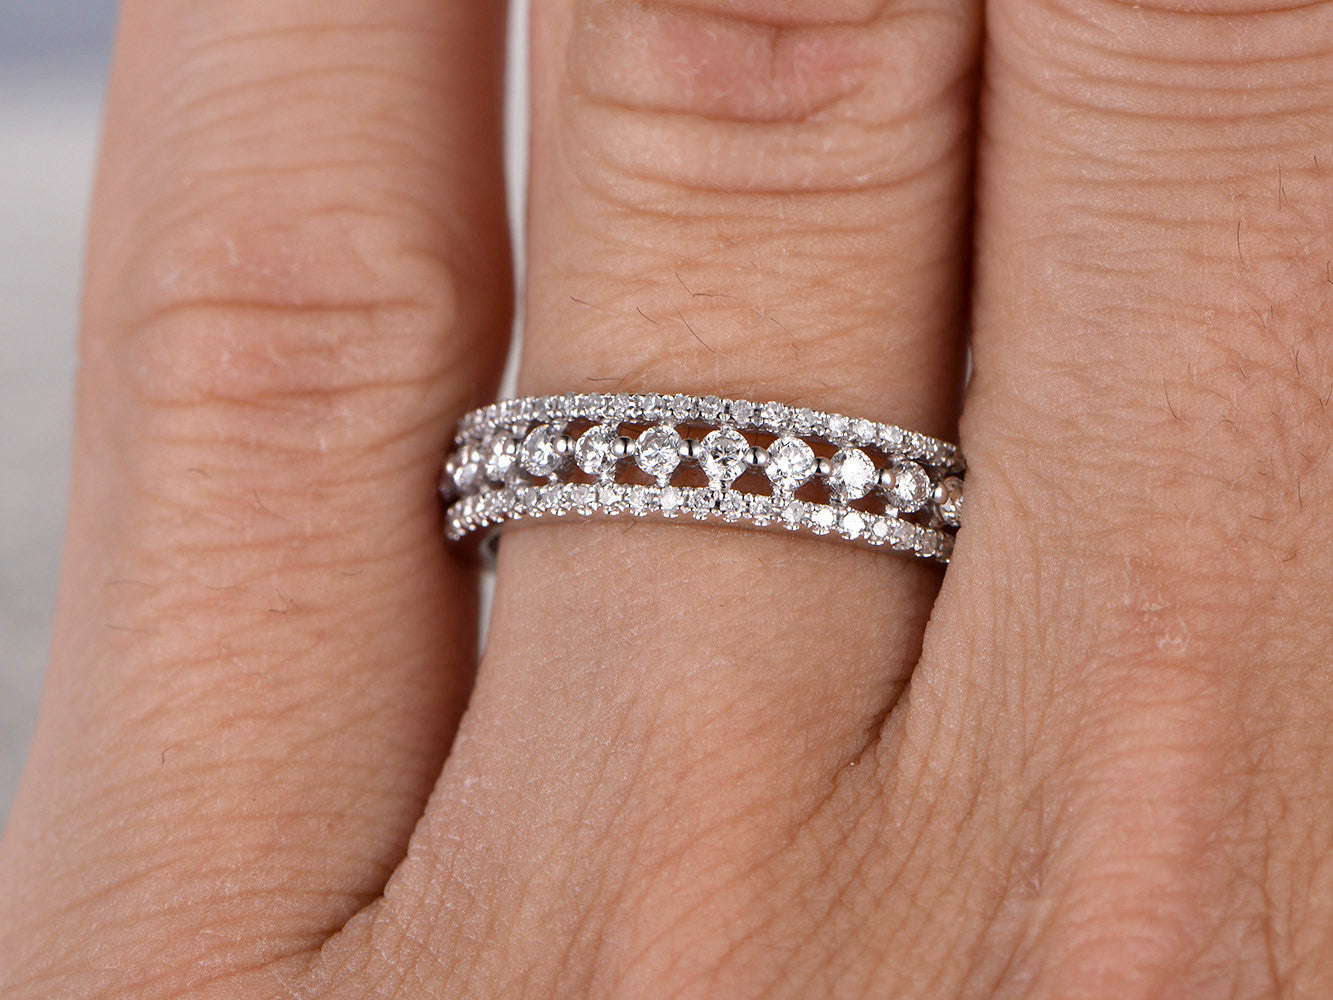 Stacking Diamond Wedding Ring,Solid 14K White gold,1.10ctw Diamonds,Anniversary Ring,Eternity Band,engagement ring,Matching band,Fine design